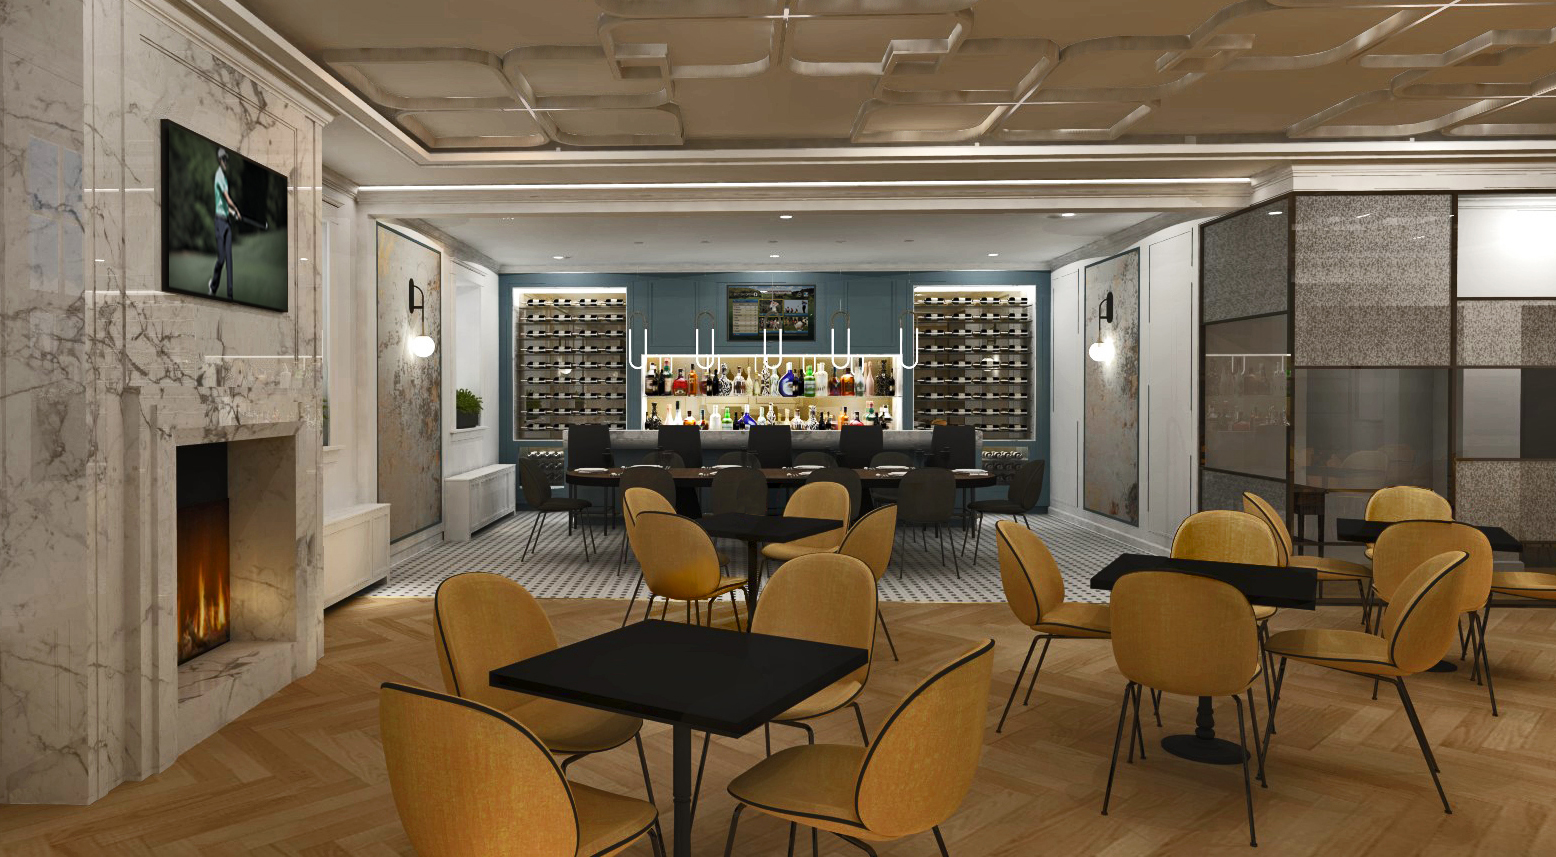 The National Club restaurant with yellow dining chairs, marble fireplace, at bar in back with light blue wall